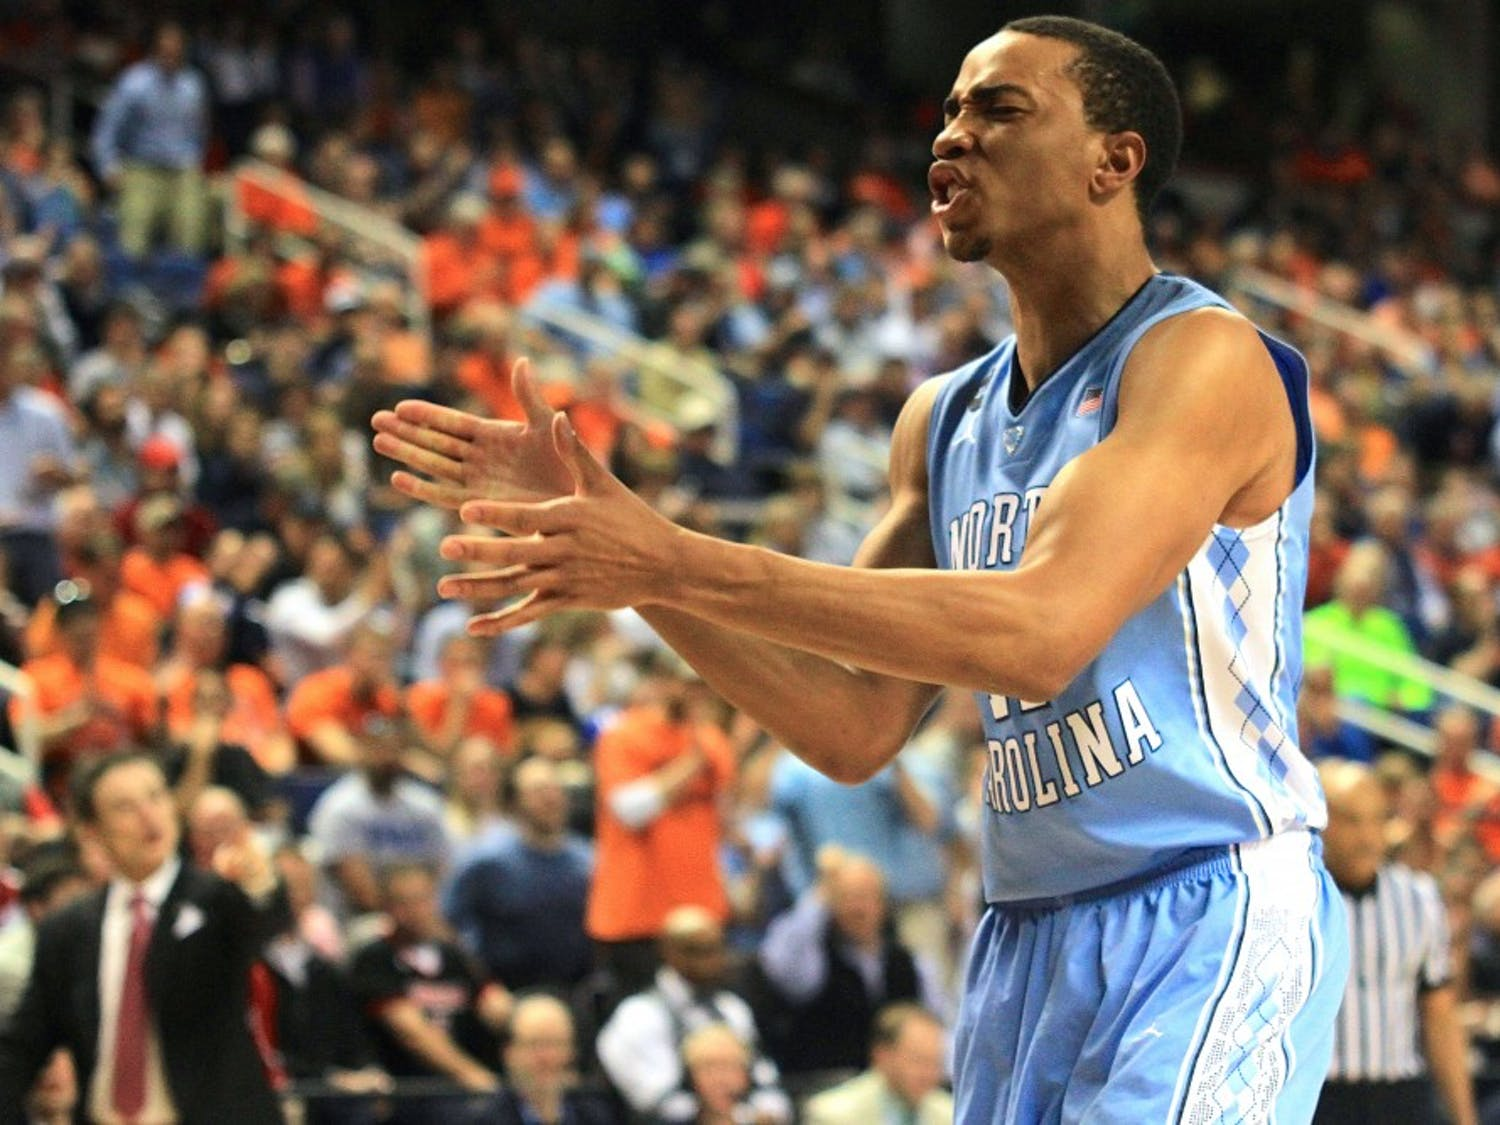 Brice Johnson celebrates a dunk during the first half. Johnson led the Tar Heels in points and rebounds in Thursday's game against Louisville.